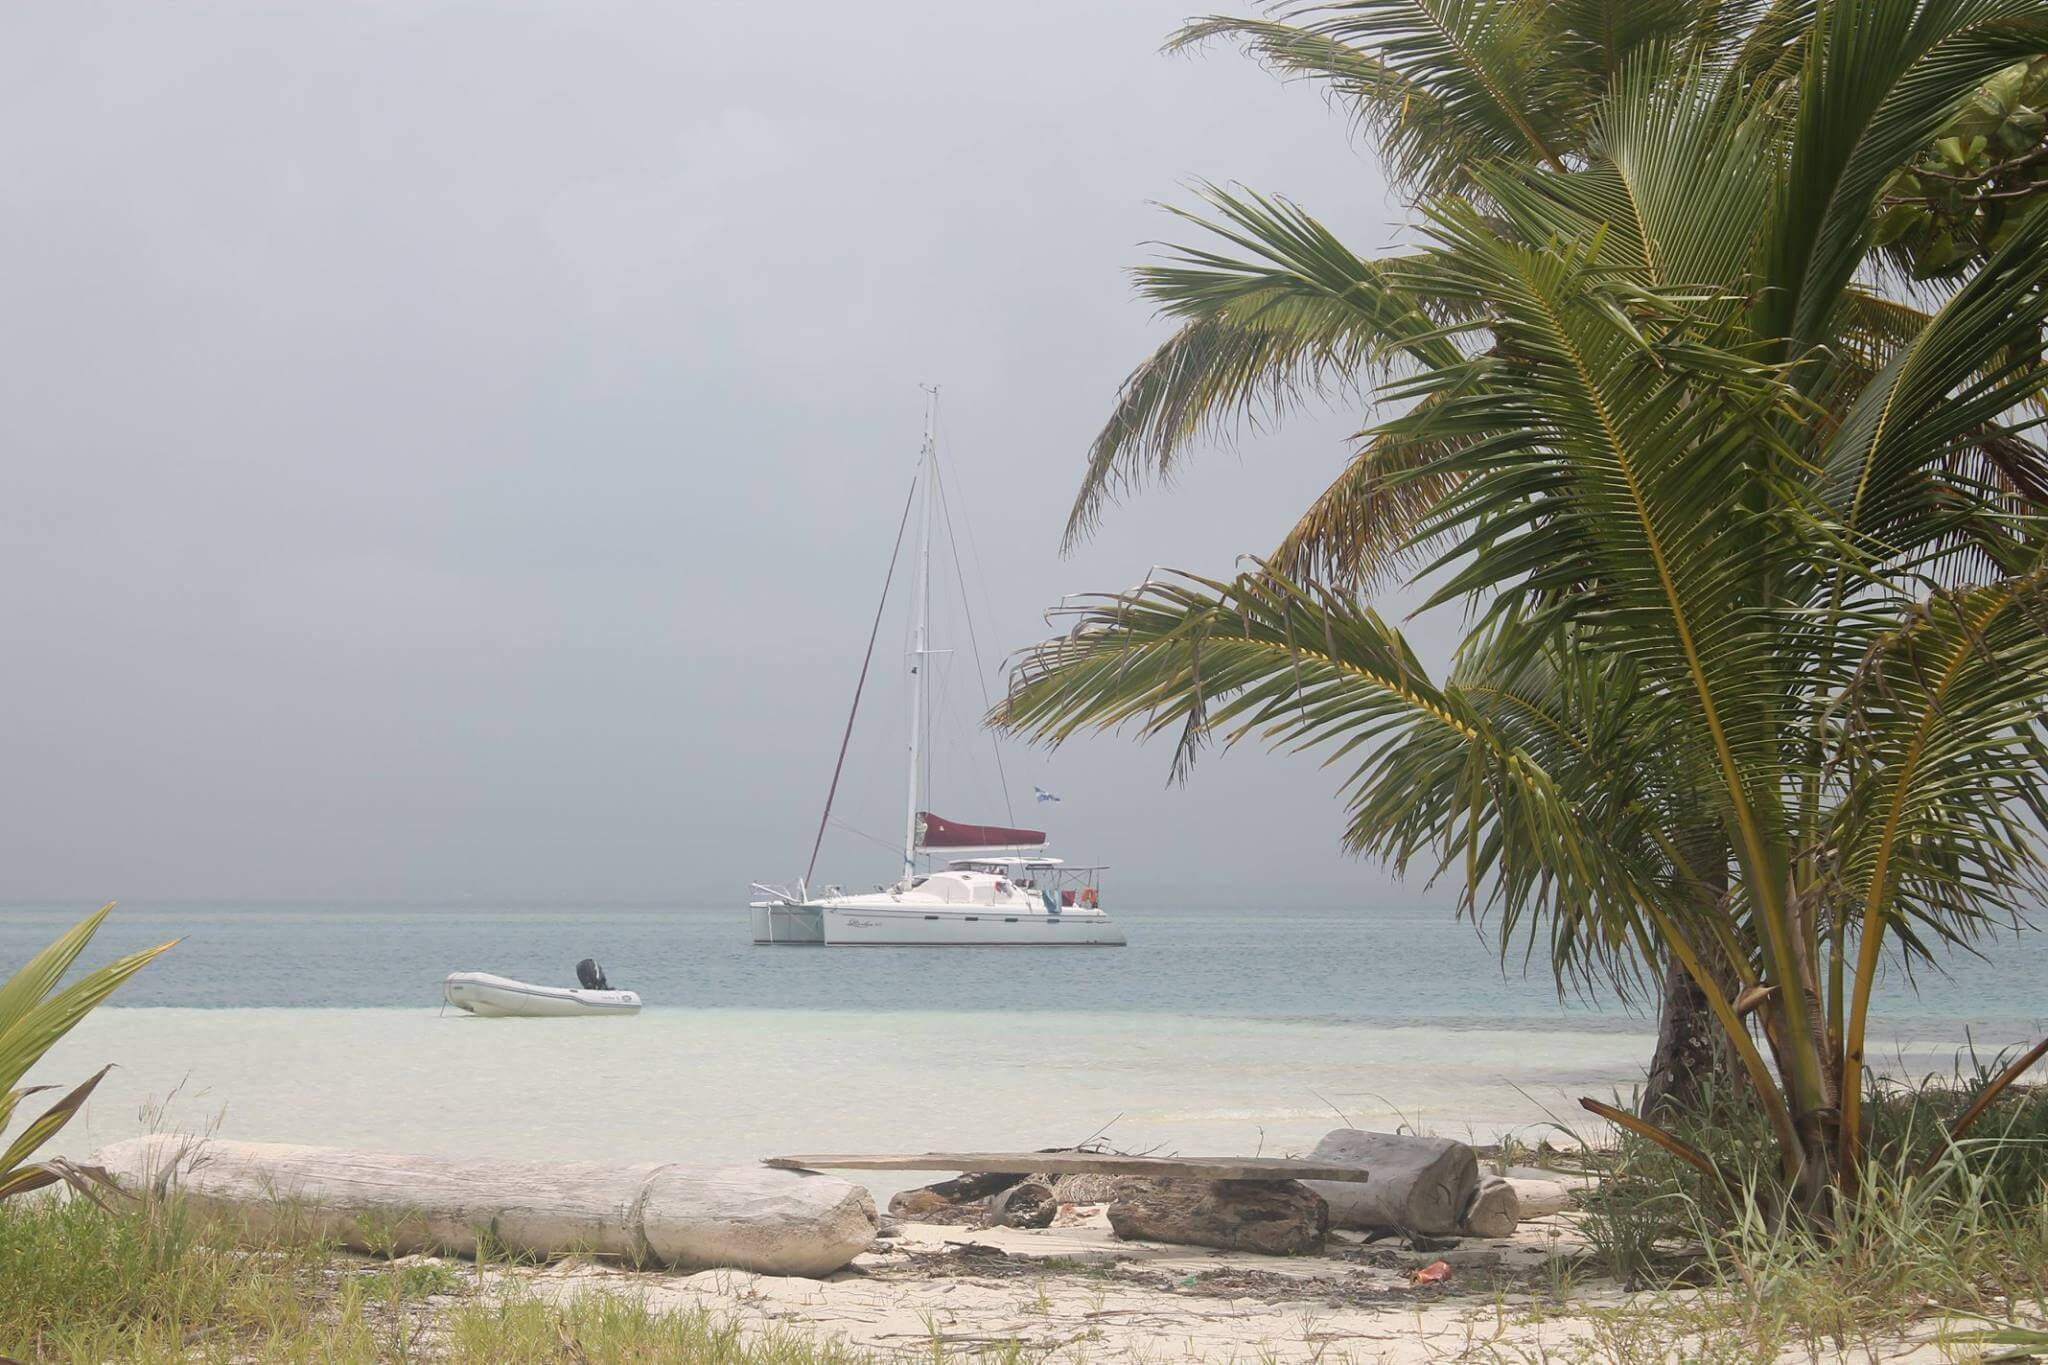 Used Sail Catamaran for Sale 2008 Privilege 445 Boat Highlights